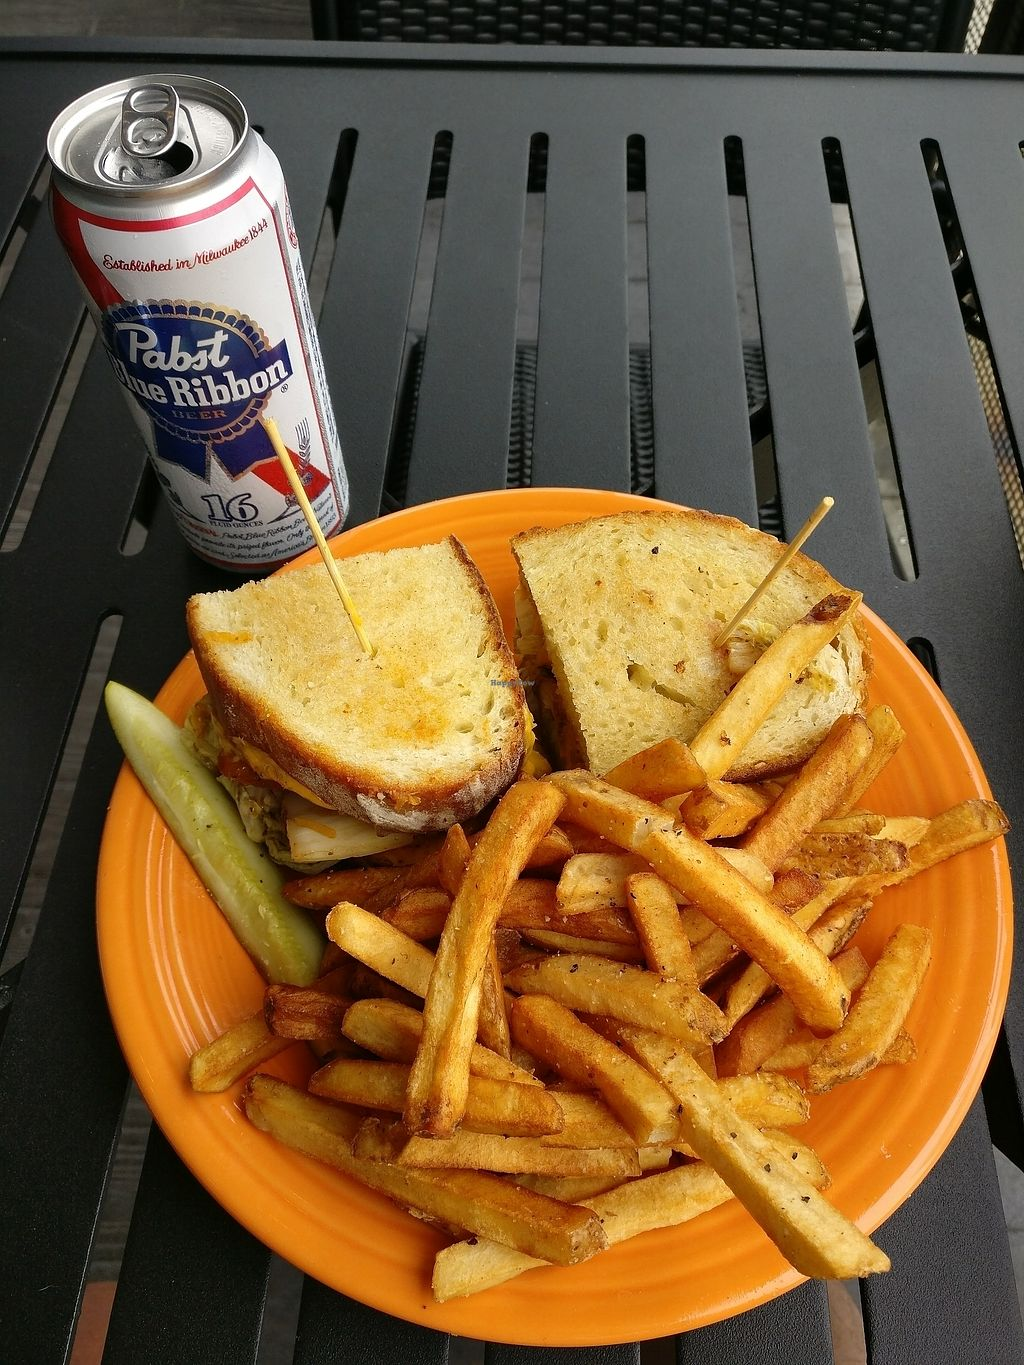 """Photo of Melt Bar & Grilled - High St  by <a href=""""/members/profile/Nogd"""">Nogd</a> <br/>Parmageddon <br/> July 6, 2017  - <a href='/contact/abuse/image/43446/277272'>Report</a>"""